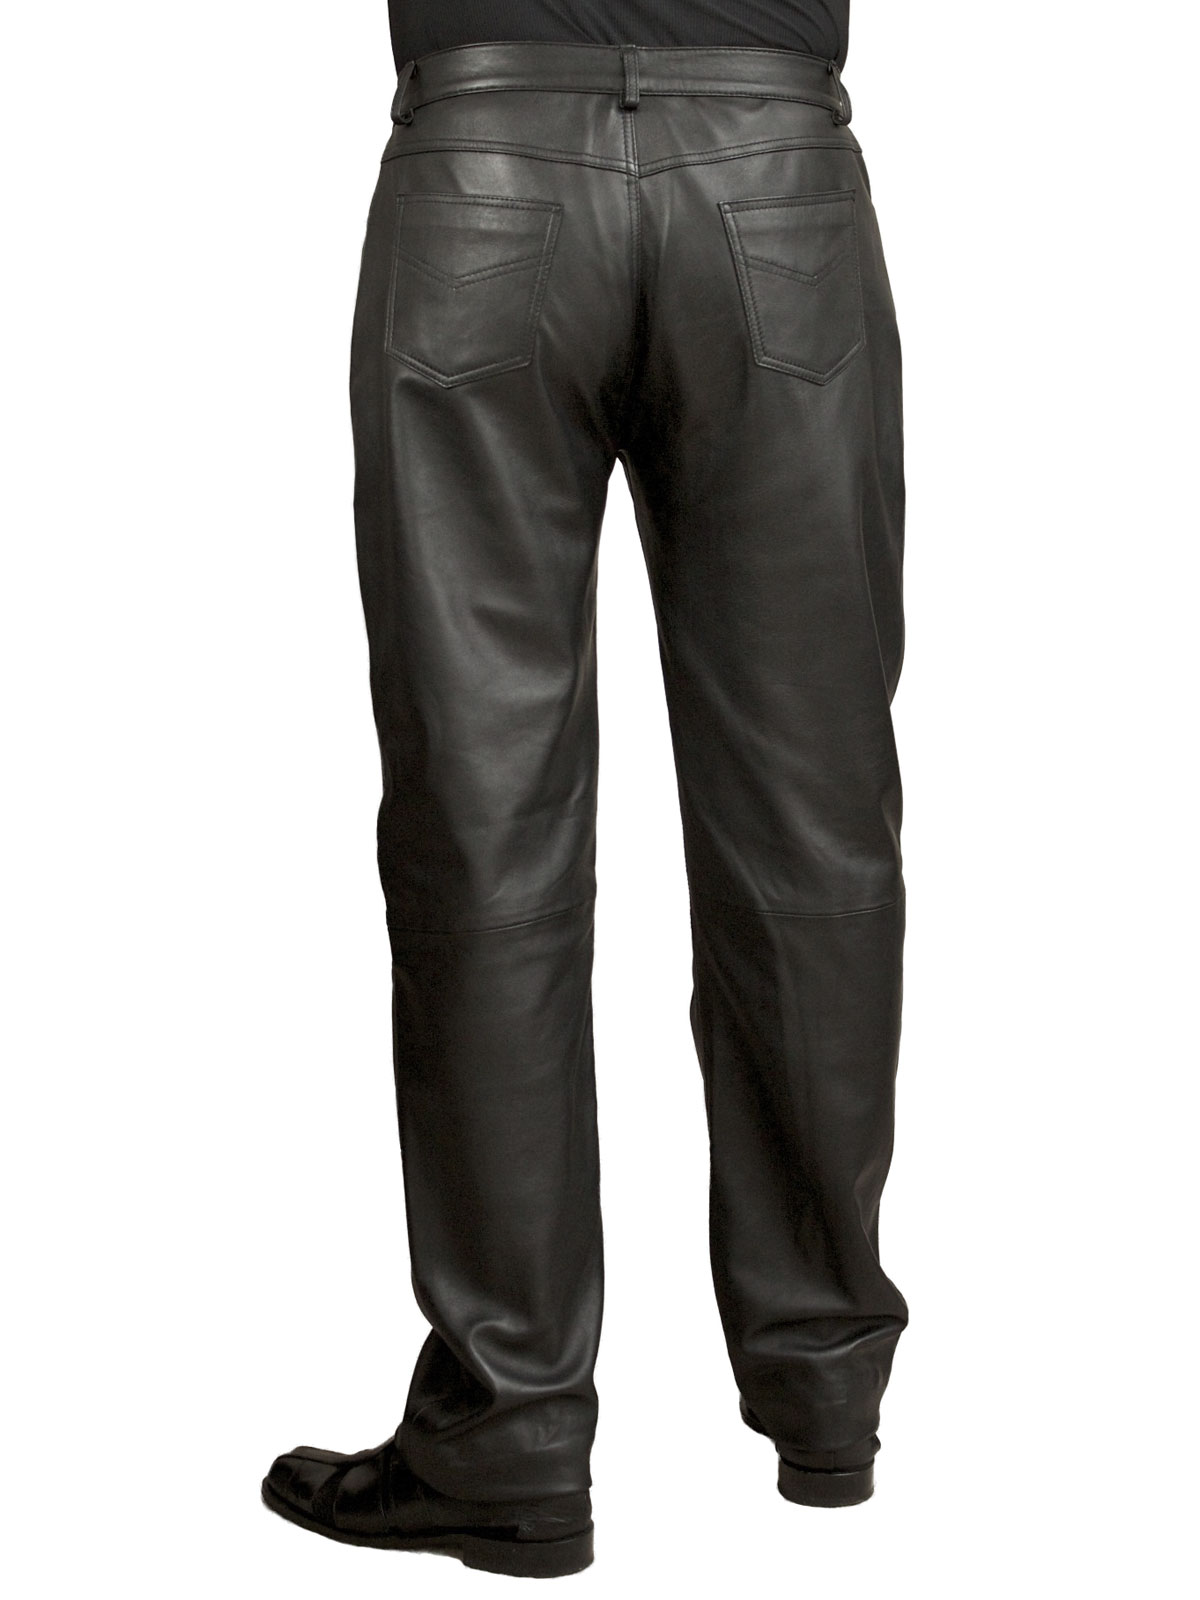 Mens Black Soft Leather Trousers Jeans Tout Ensemble